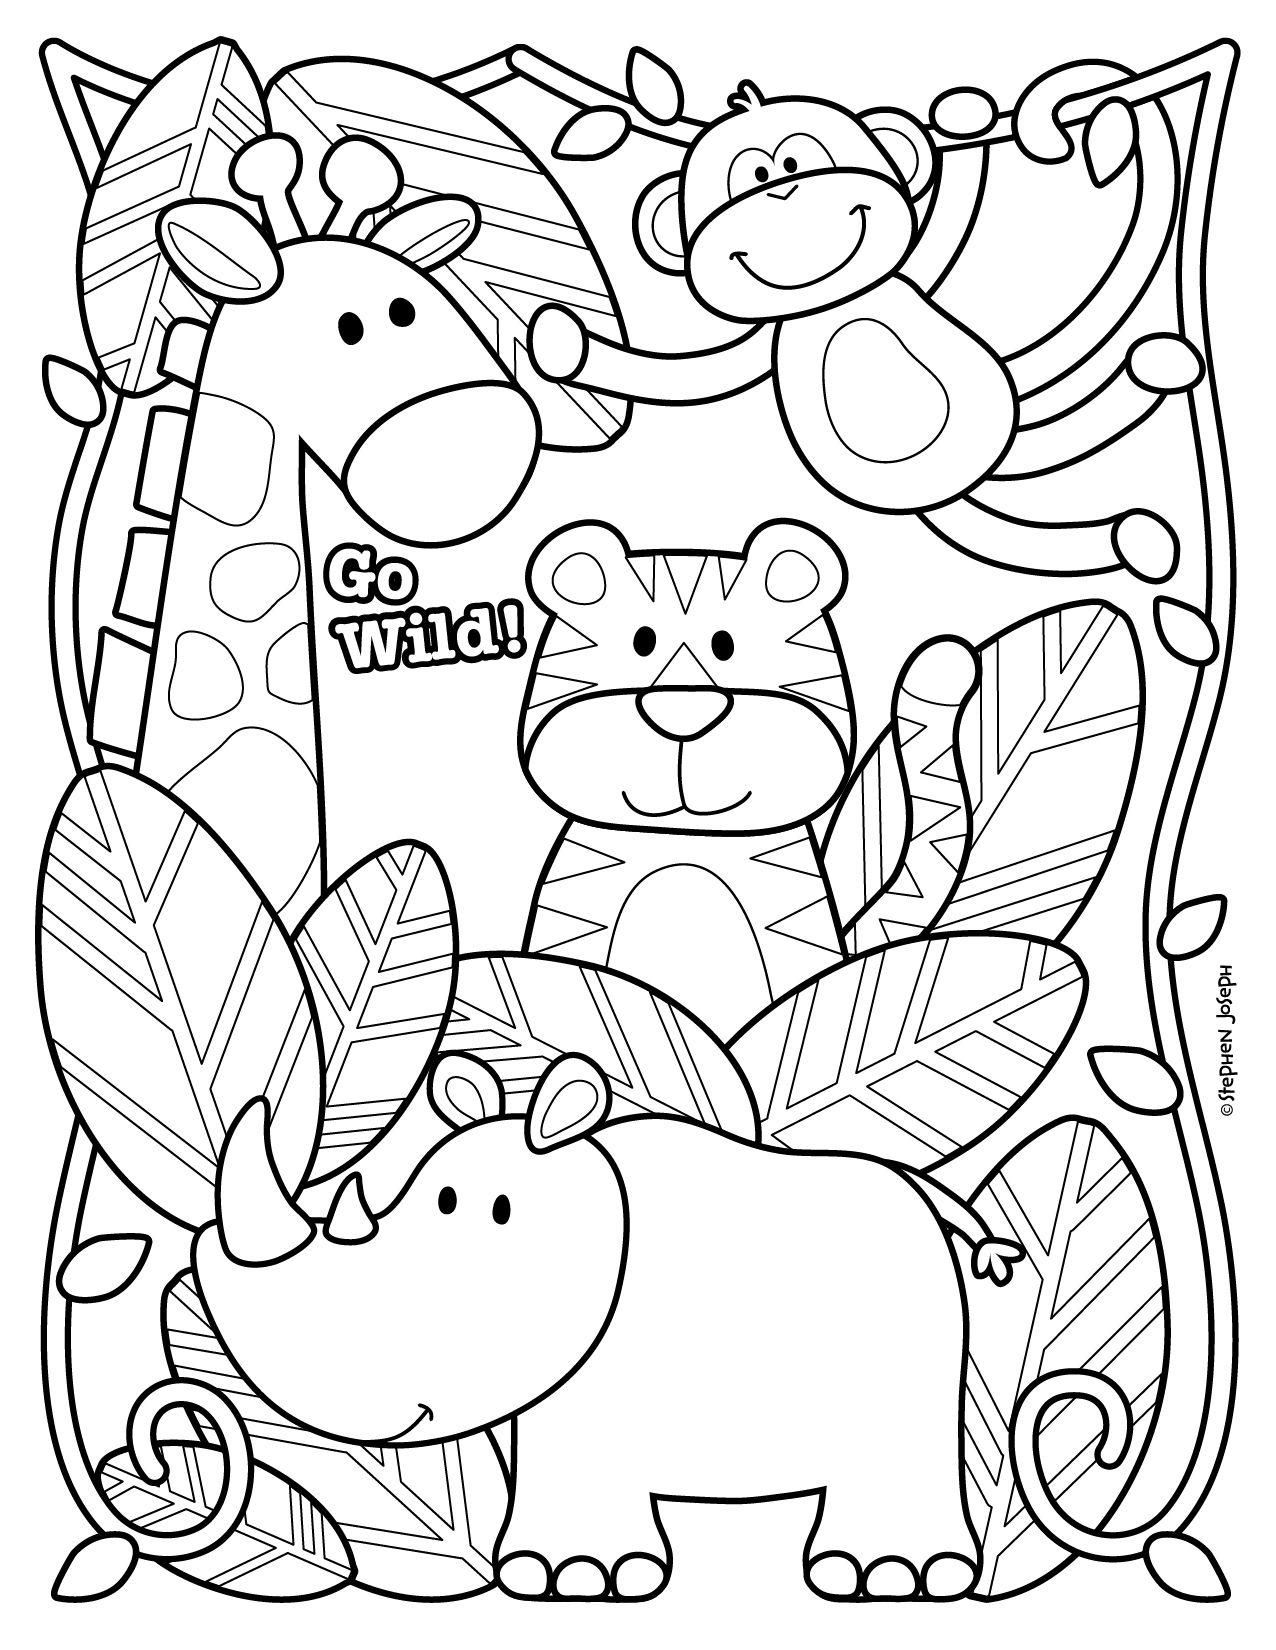 cute zoo coloring pages cute zoo animal coloring pages coloring home zoo pages coloring cute